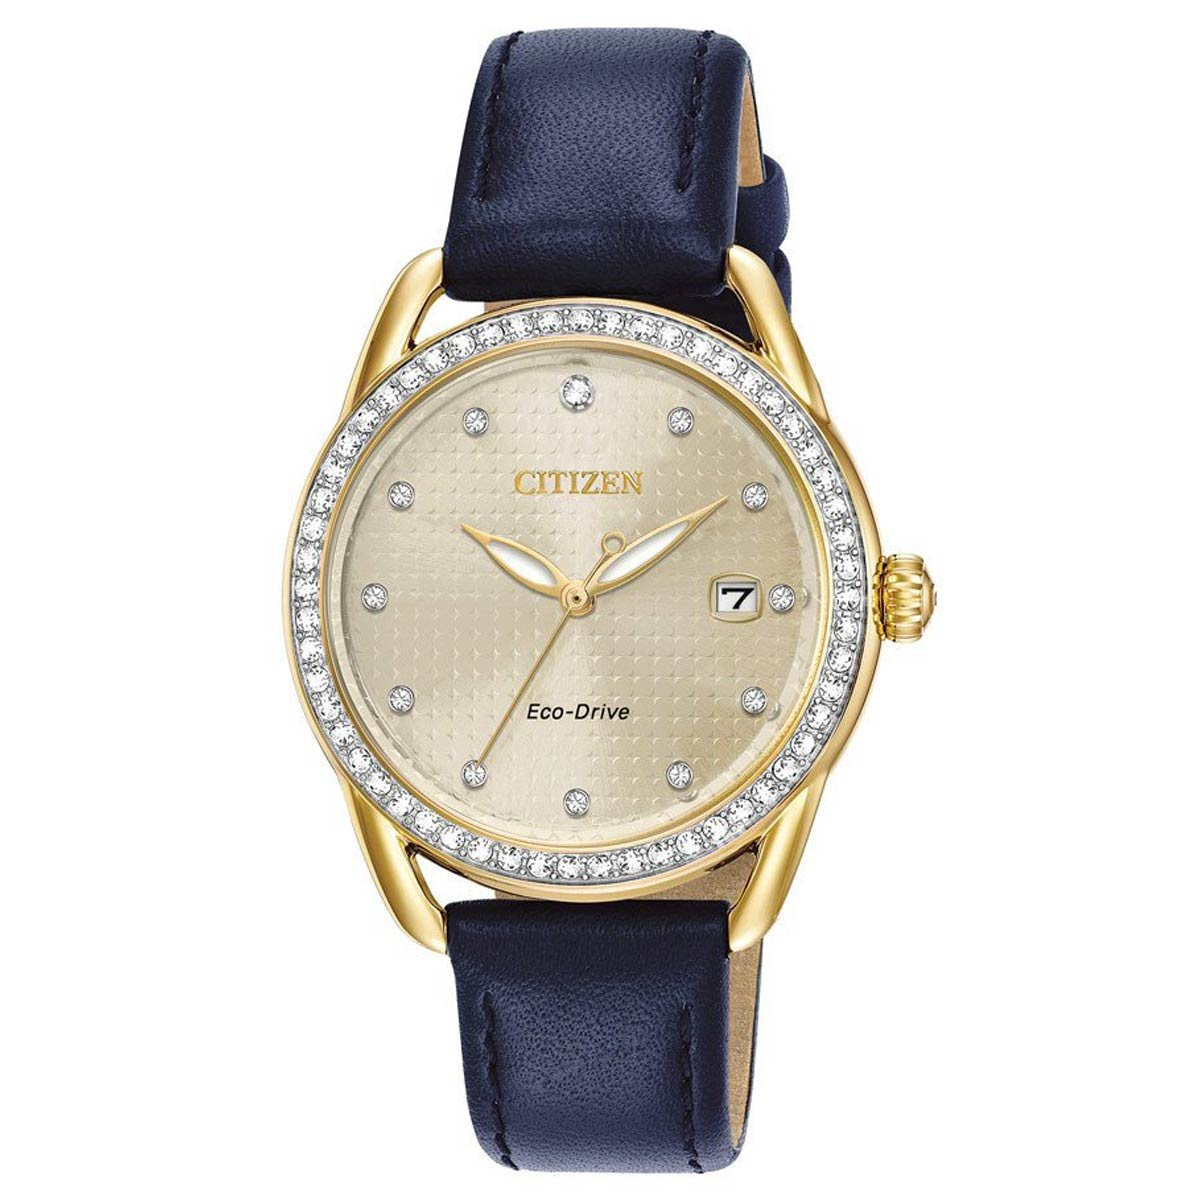 Ladies' Drive from Citizen LTR Gold-Tone Dial and Navy Blue Leather Strap Watch FE6112-09P